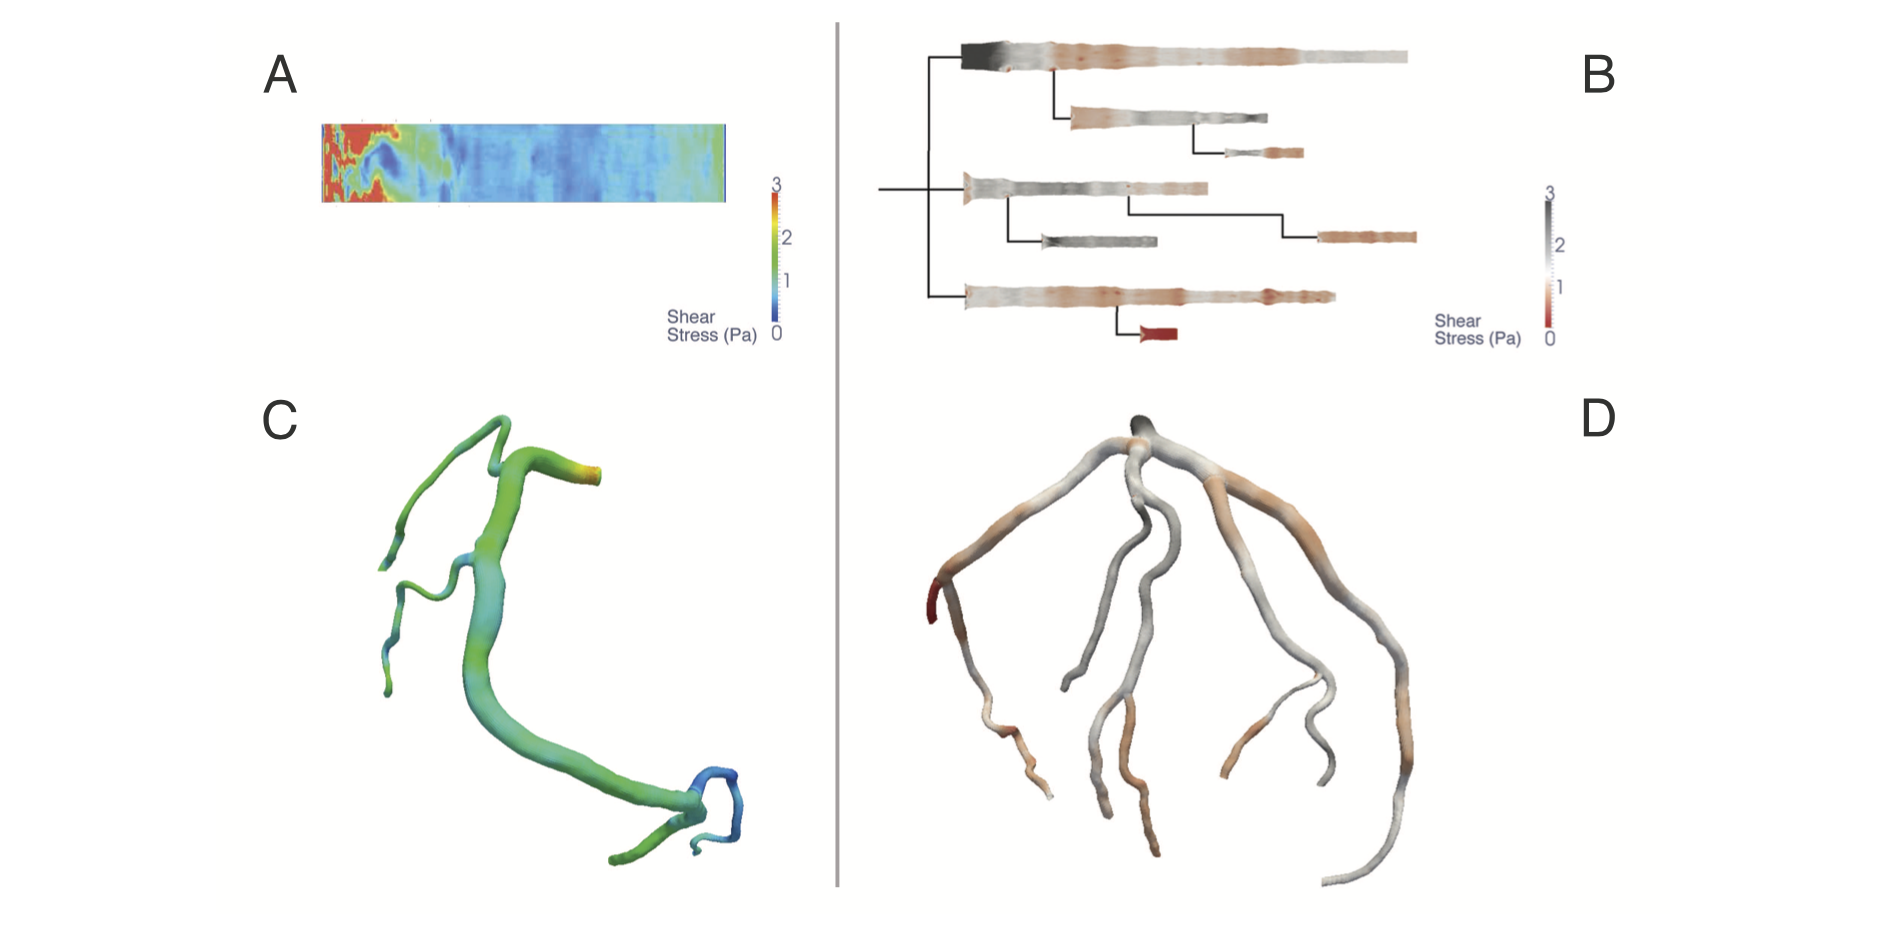 Evaluation of Artery Visualizations for Heart Disease Diagnosis